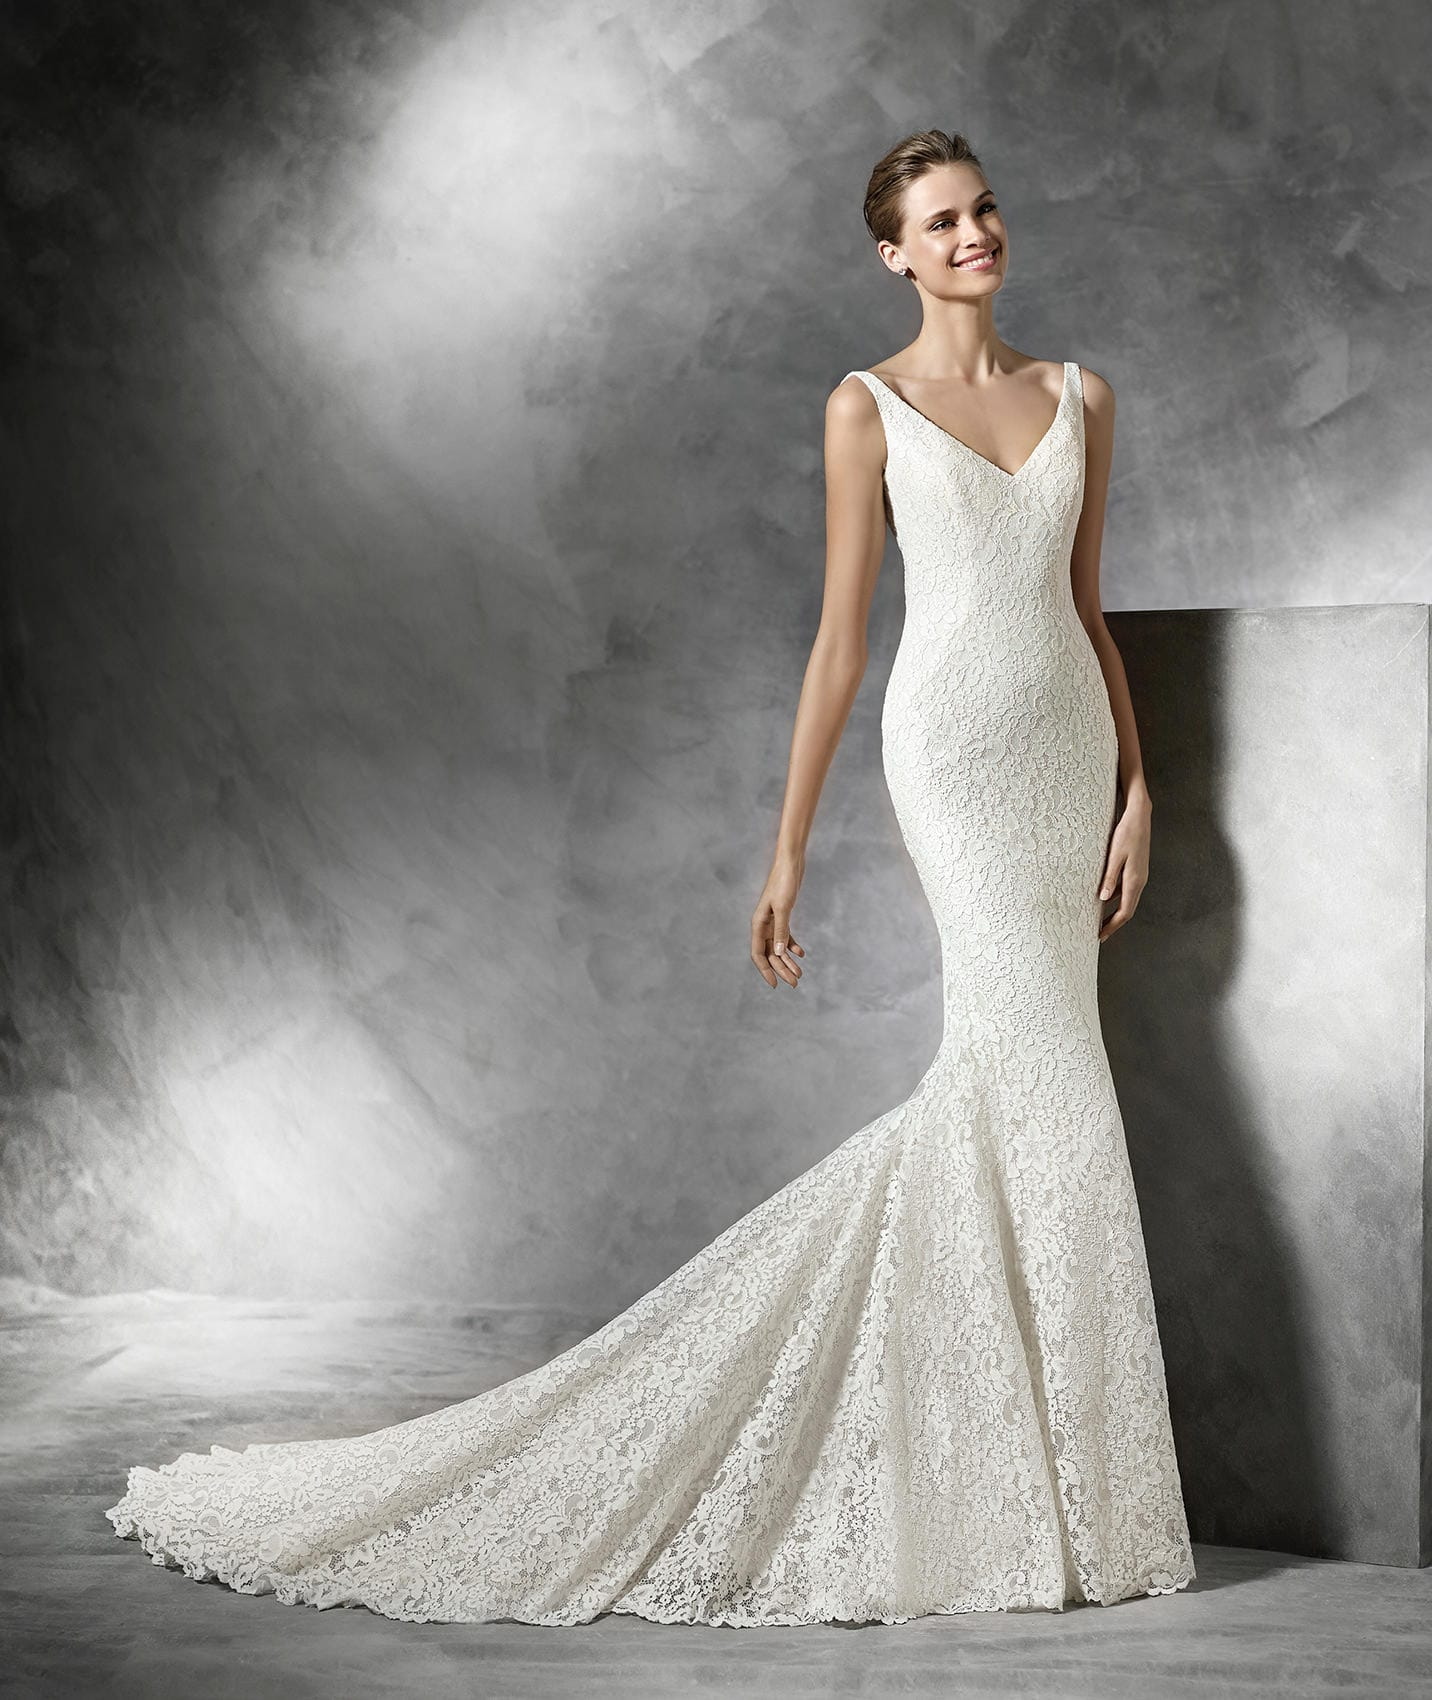 Pronovias maricel sell my wedding dress online sell my for Sell wedding dress online